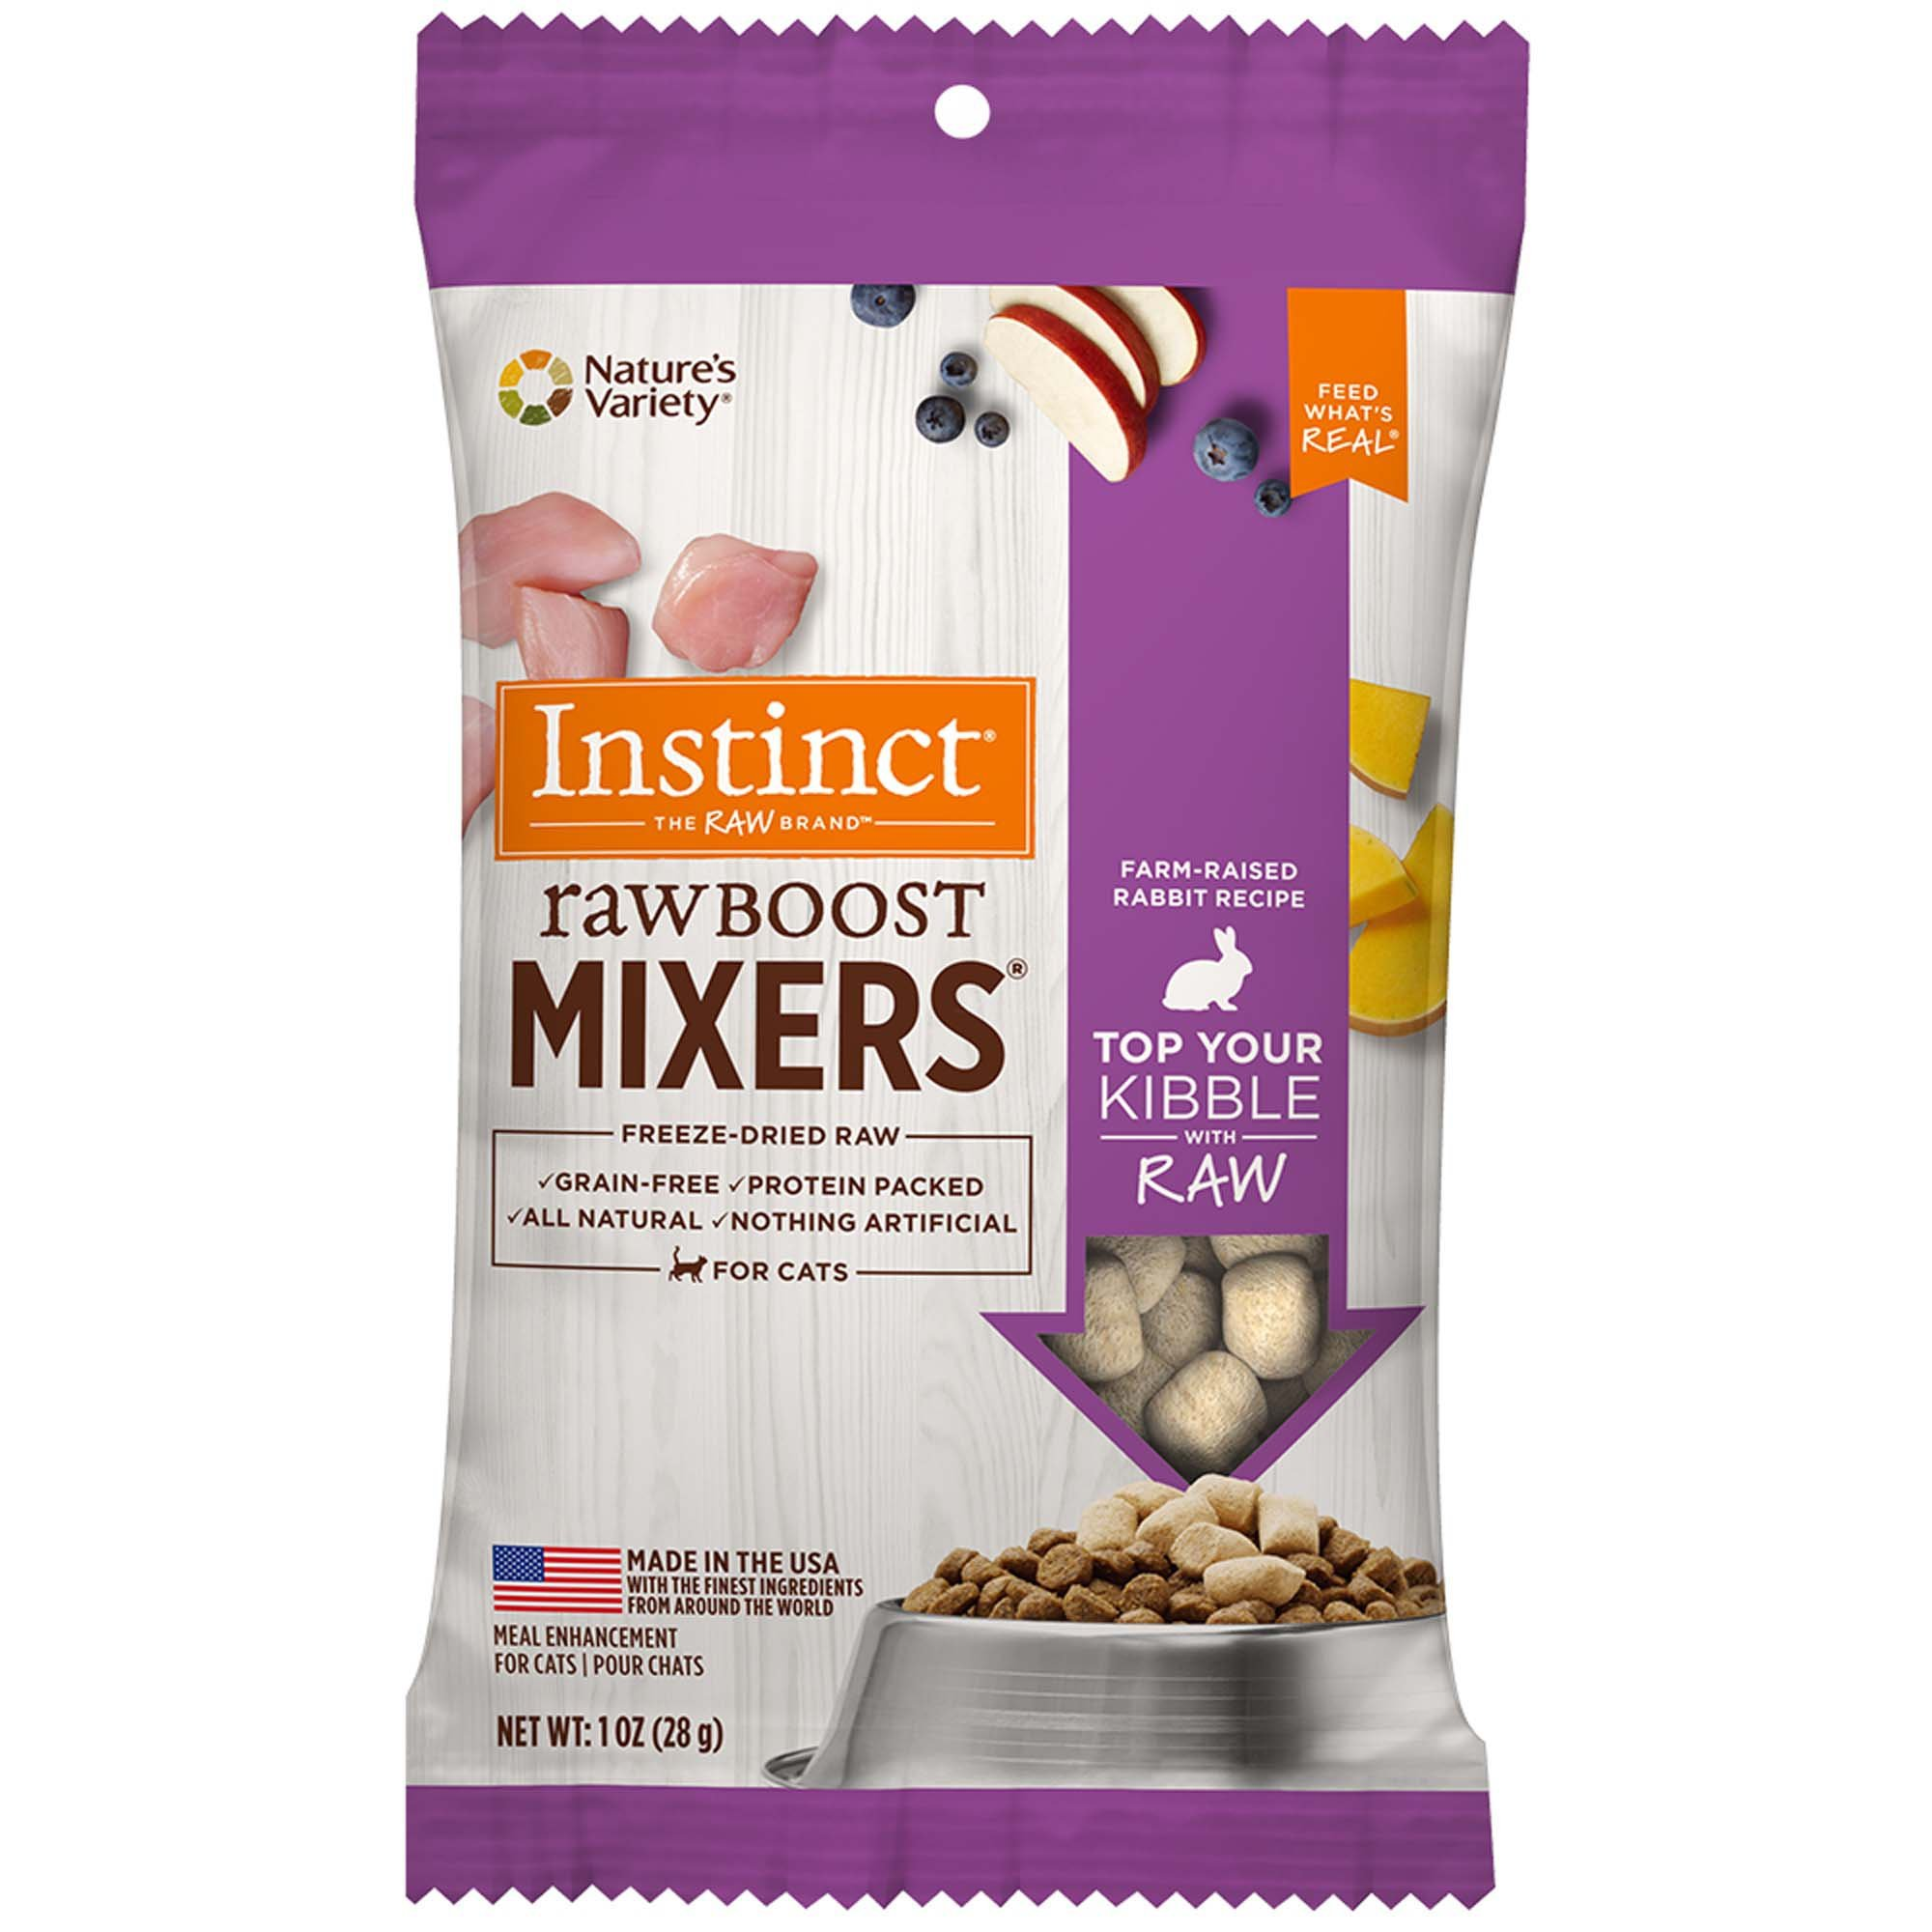 Nature's Variety Instinct Freeze Dried Raw Boost Mixers Grain Free Rabbit All Natural Cat Food Topper, 1 oz. Trial Size